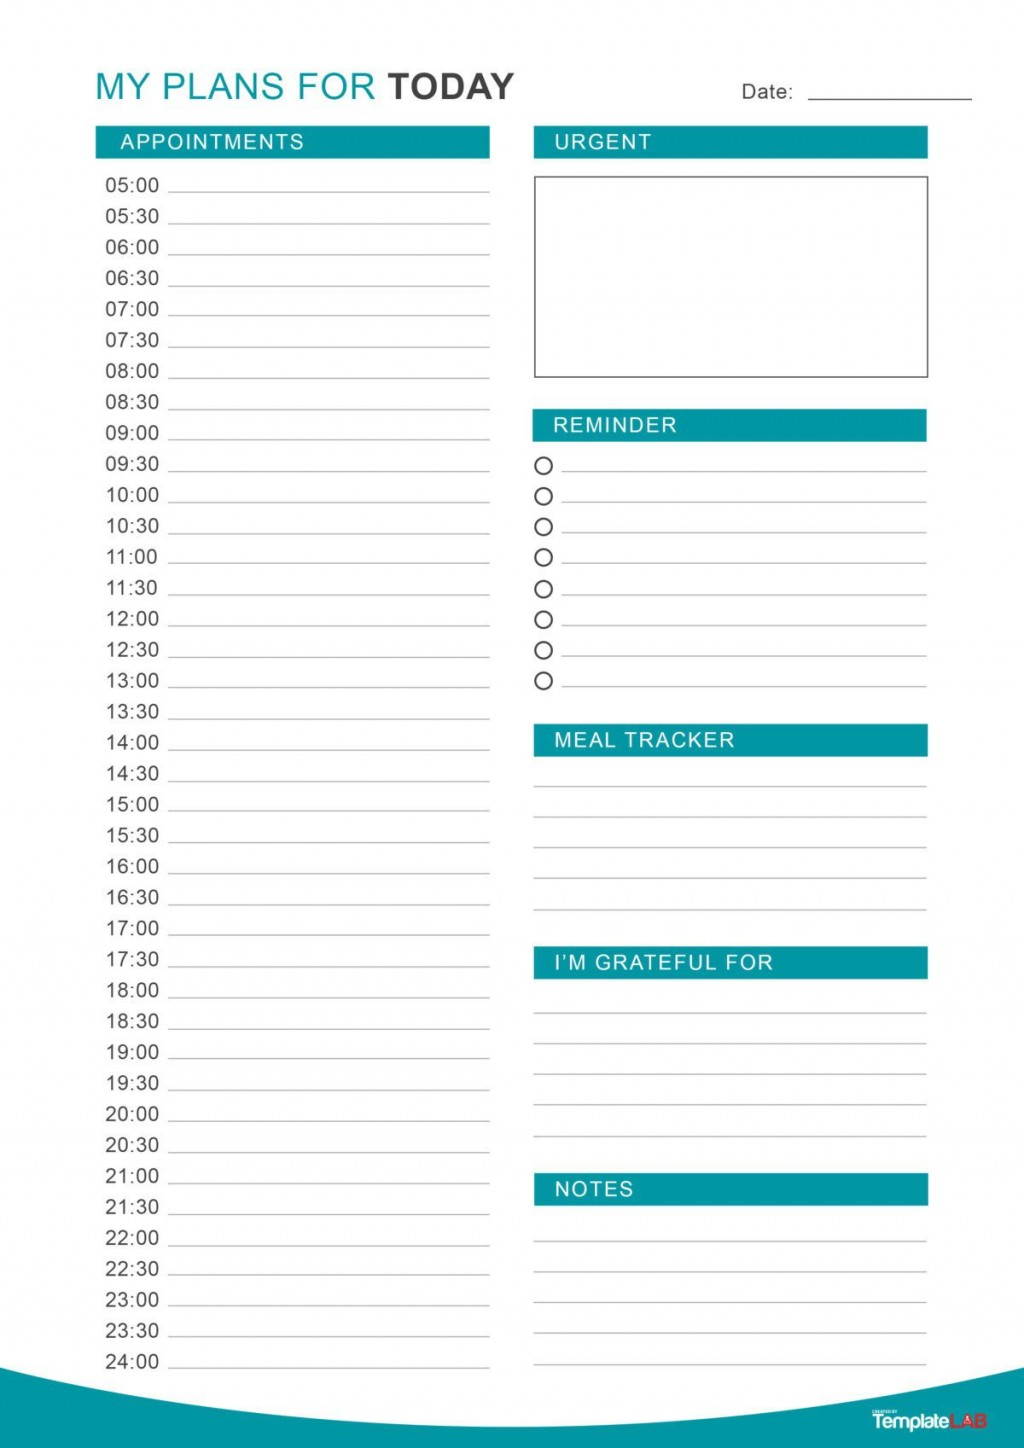 006 Fascinating Daily Schedule Template Printable Picture Large